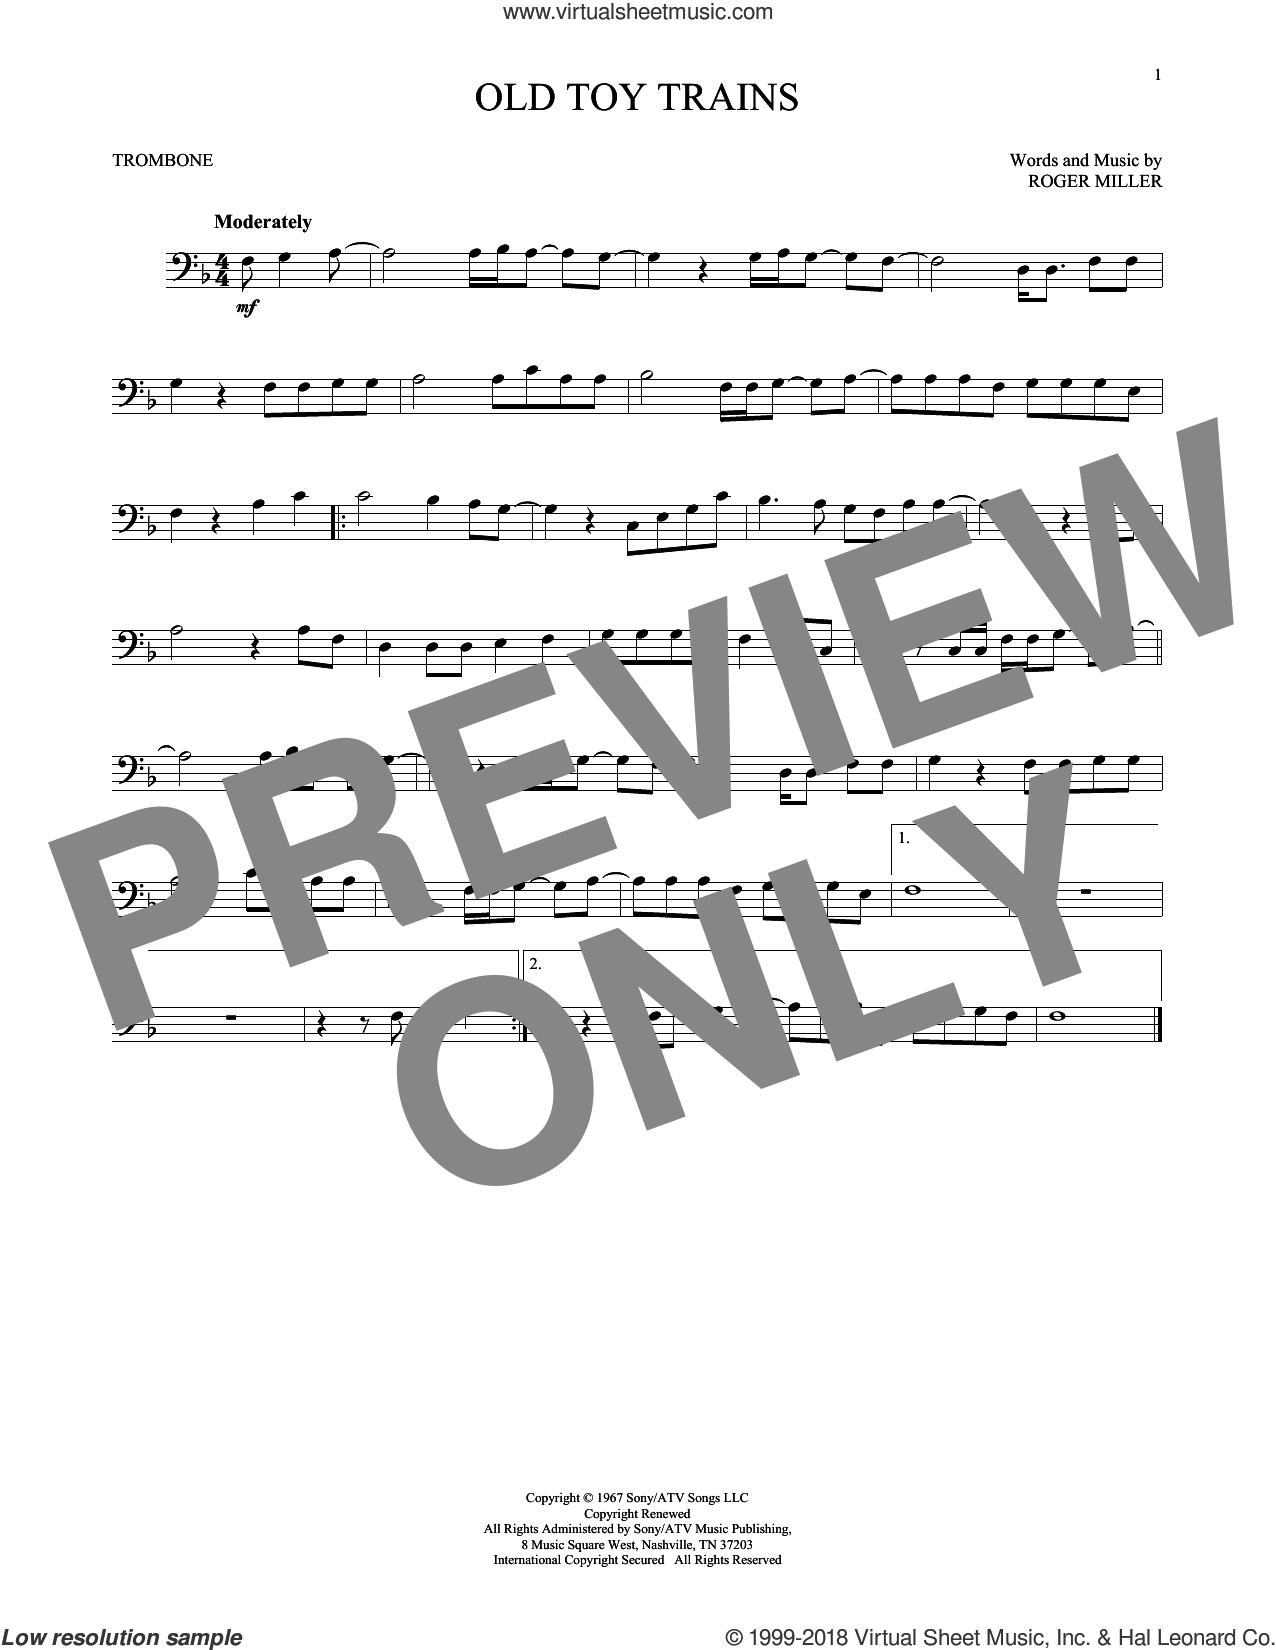 Old Toy Trains sheet music for trombone solo by Roger Miller, intermediate